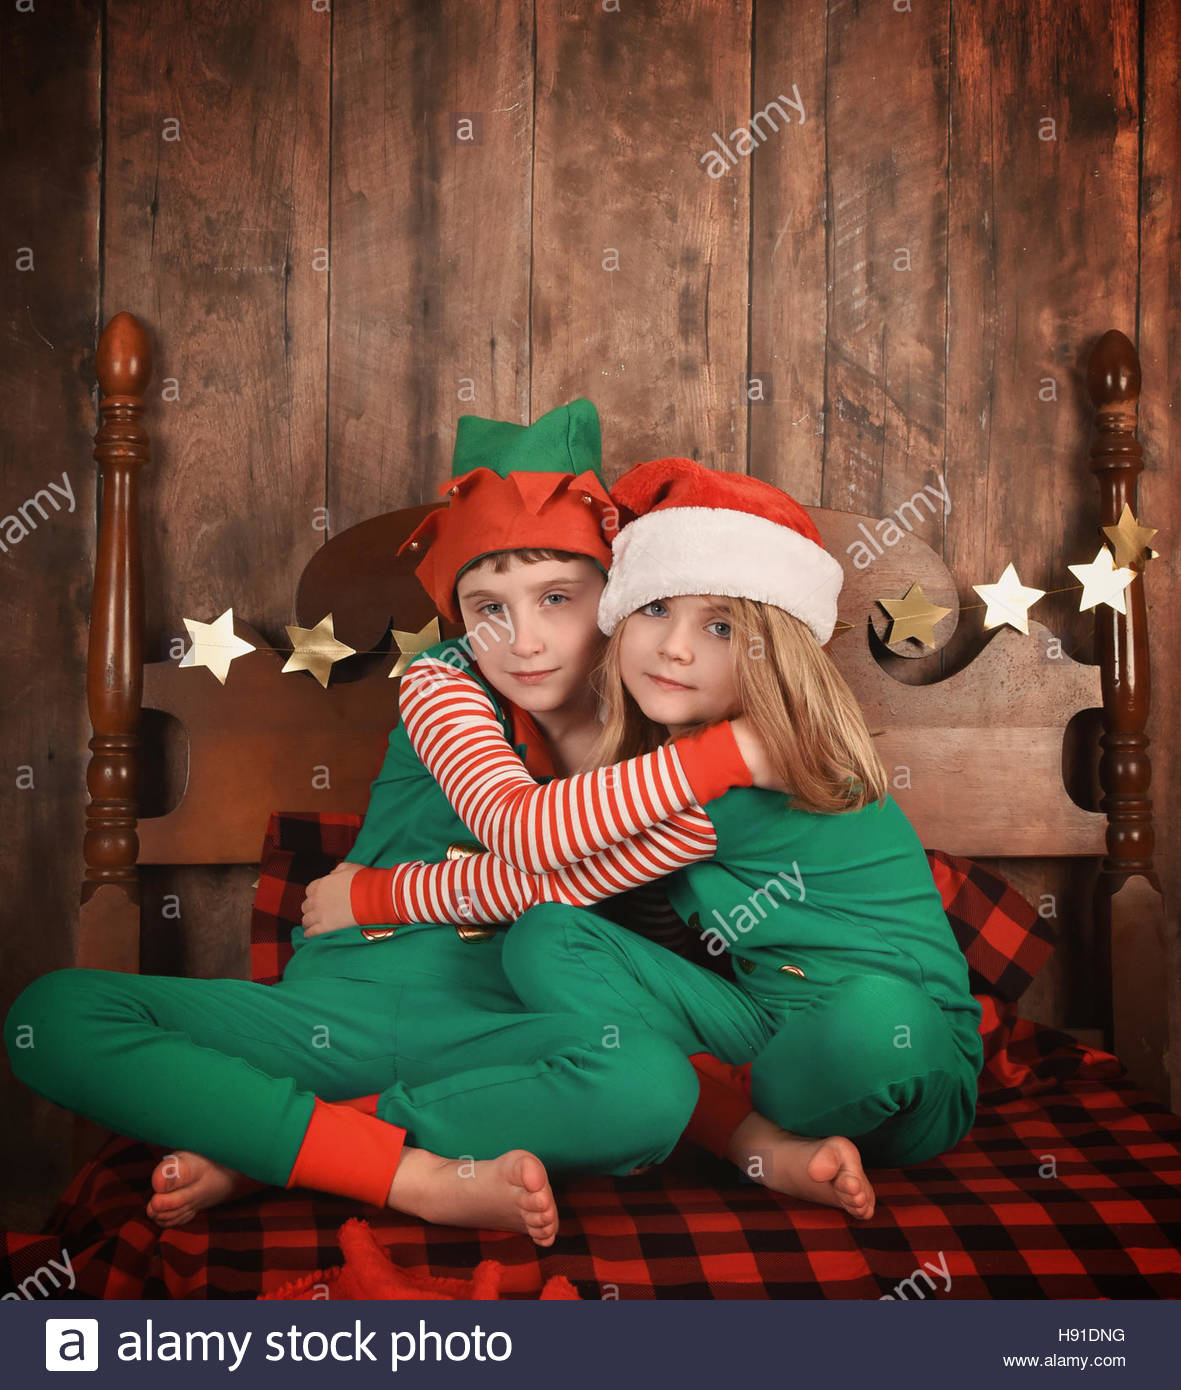 Little children wearing pajamas with Christmas hats hugging each other on a bed for a family at home concept or Stock Photo